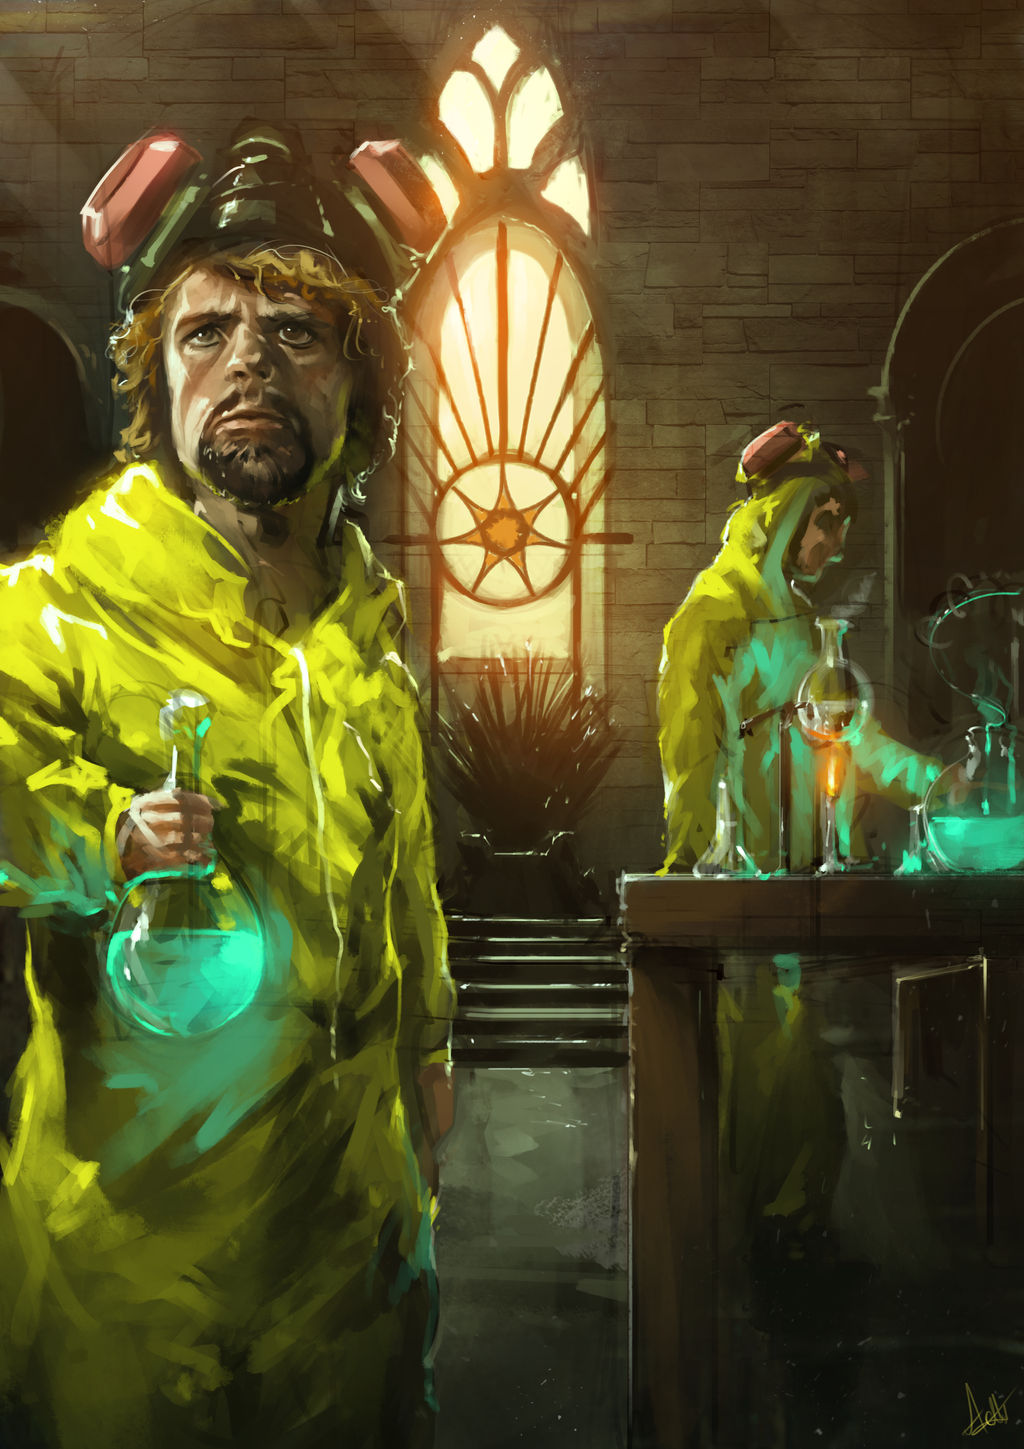 Tyrion Lannister - The One Who Knocks